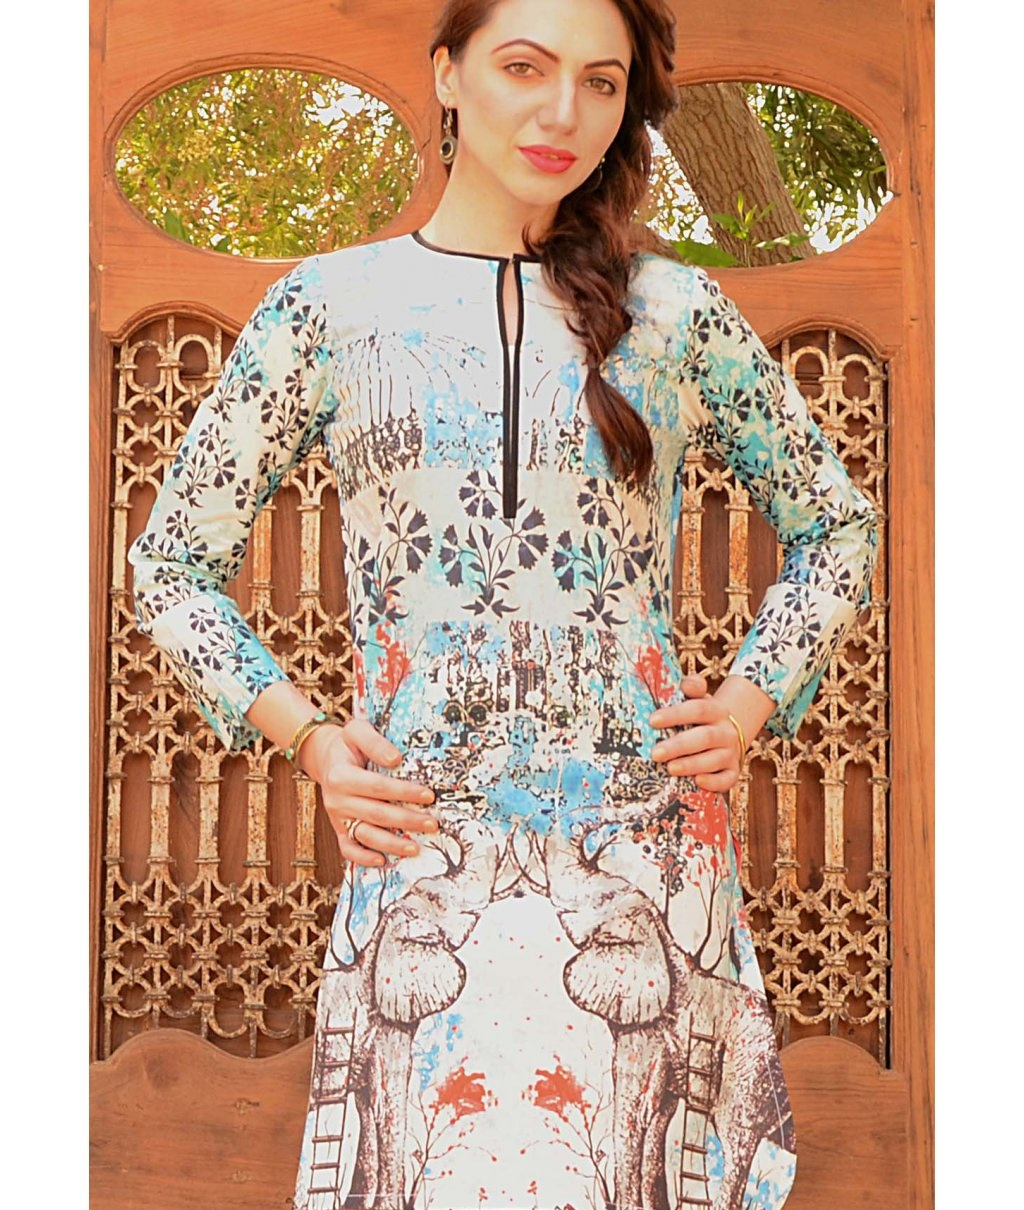 Ego Eid Dresses Collection 2016-2017 @stylesglamour (4)